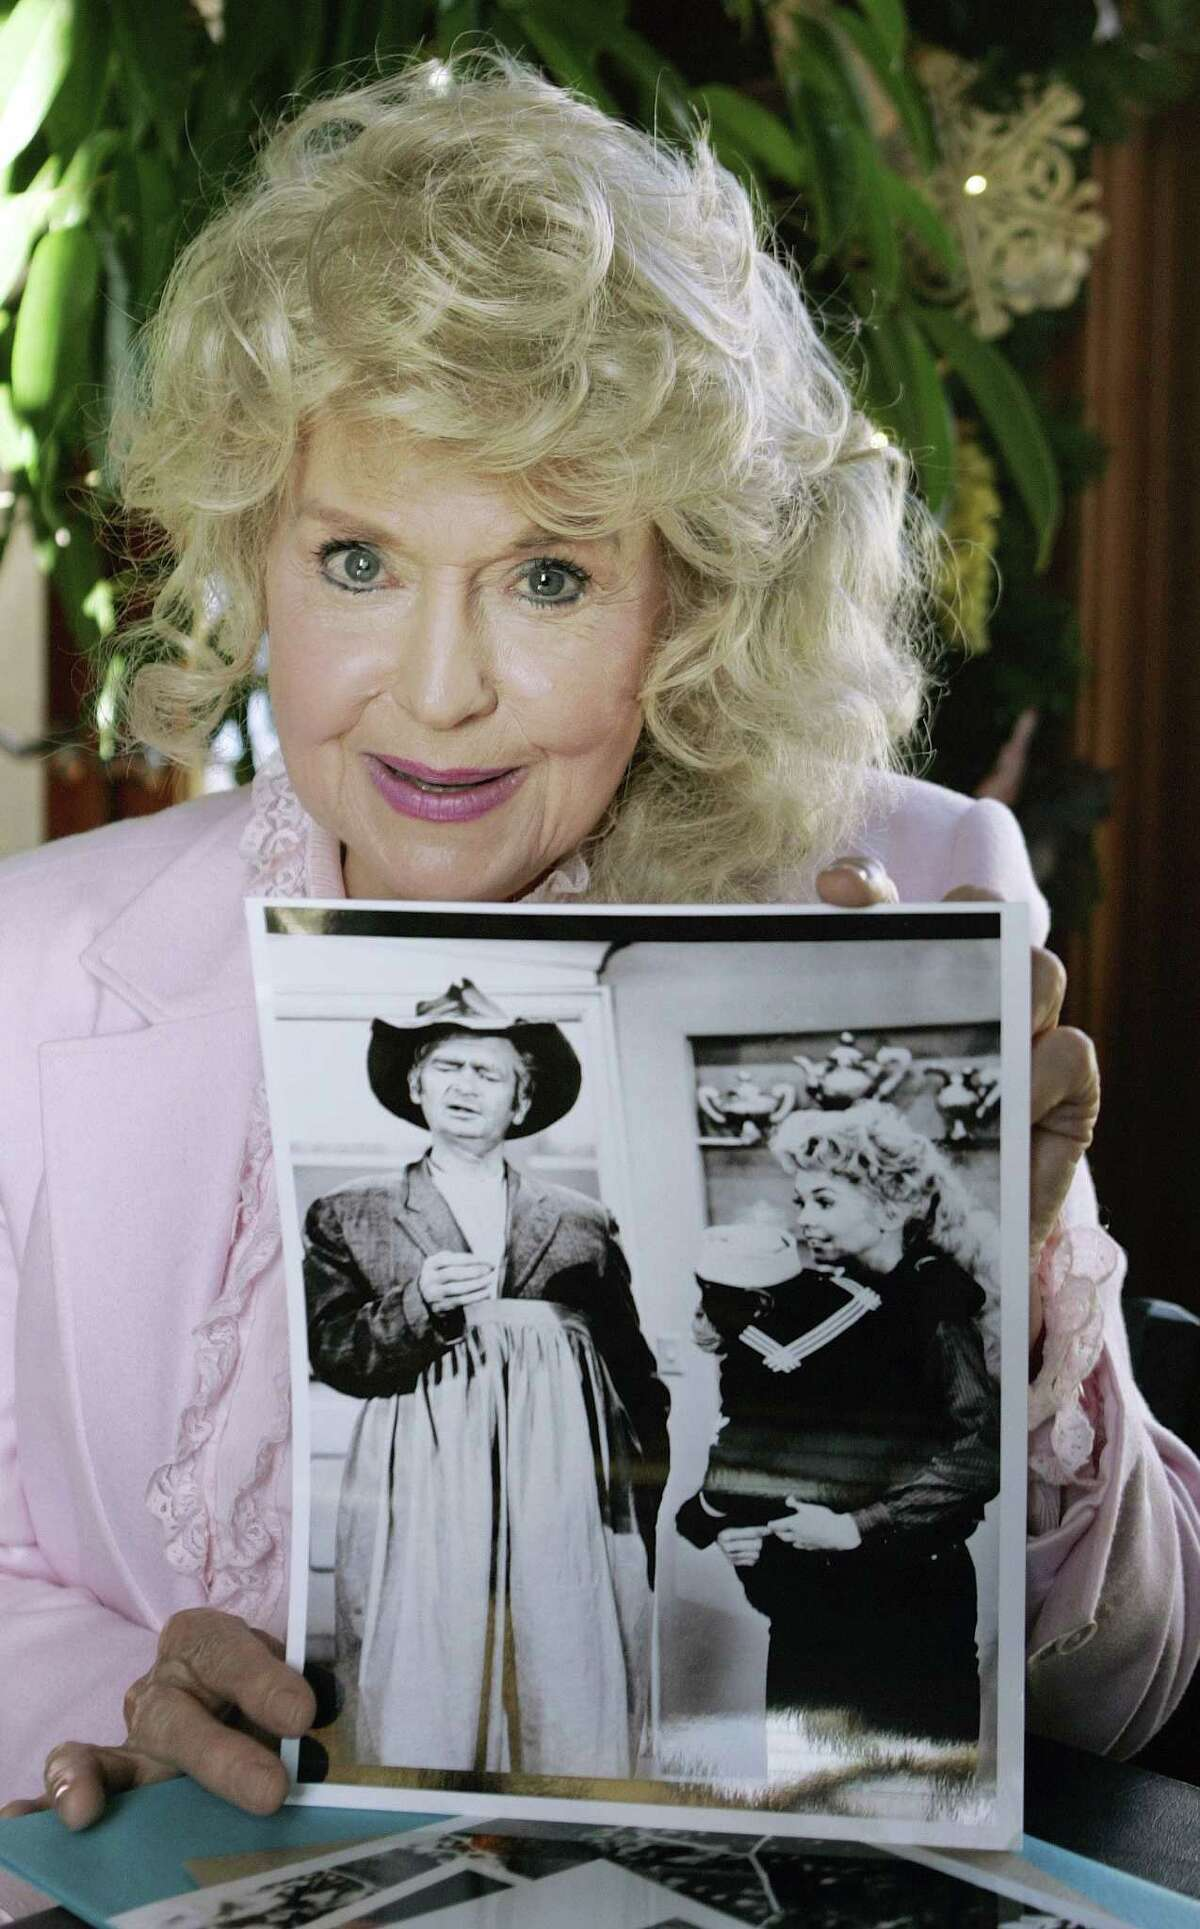 """FILE - In this Jan. 8, 2009 file photo, Donna Douglas, who starred in the television series """"The Beverly Hillbillies"""" holds a publicity picture of herself from the show, in Baton Rouge, La. Douglas, who played the buxom tomboy Elly May Clampett on the hit 1960s sitcom has died. Douglas, who was 82, died Thursday, Jan. 1, 2015, in Baton Rouge, where she lived, her niece, Charlene Smith, said. (AP Photo/Bill Haber, File)"""